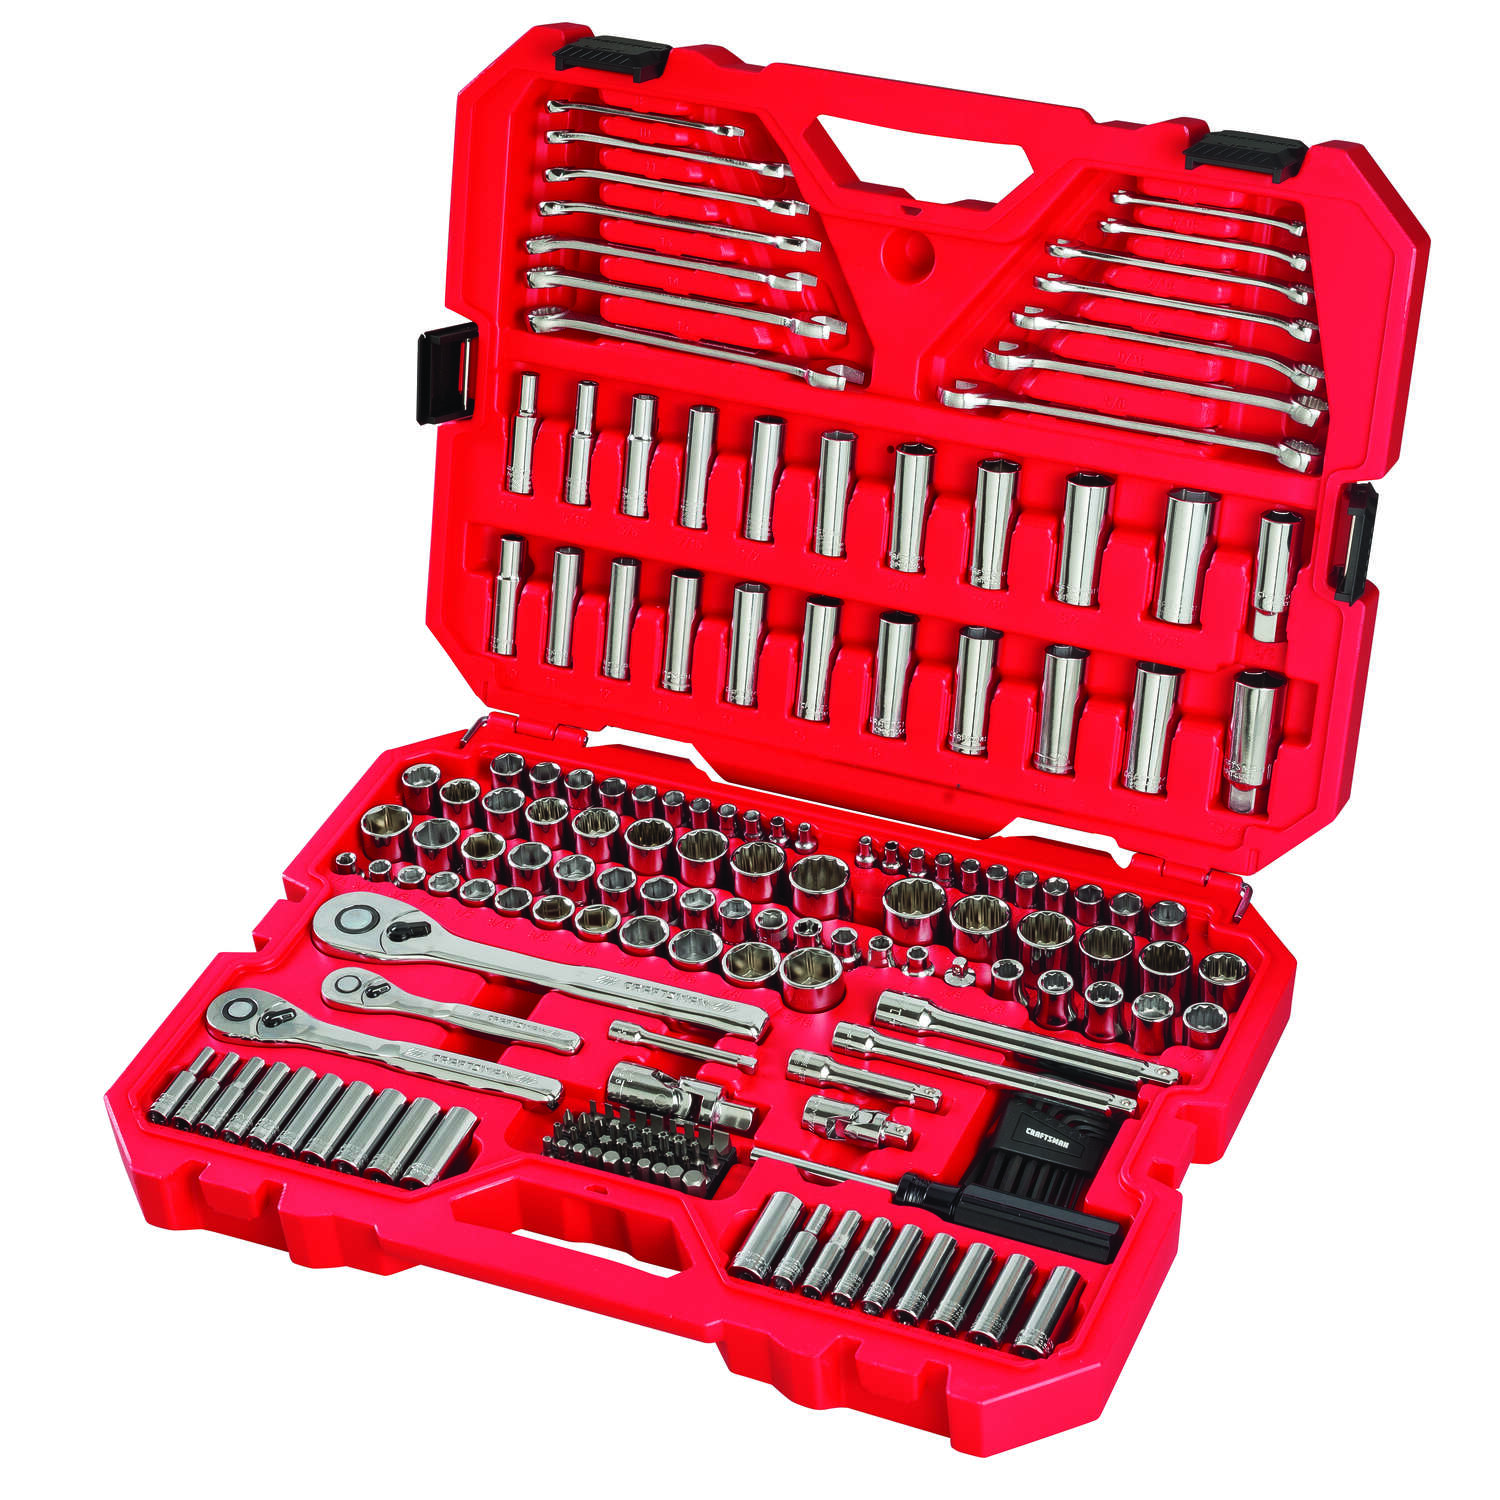 Craftsman  1/4, 3/8 and 1/2 in. drive  Metric and SAE  6 and 12 Point Mechanic's Tool Set  189 pc.